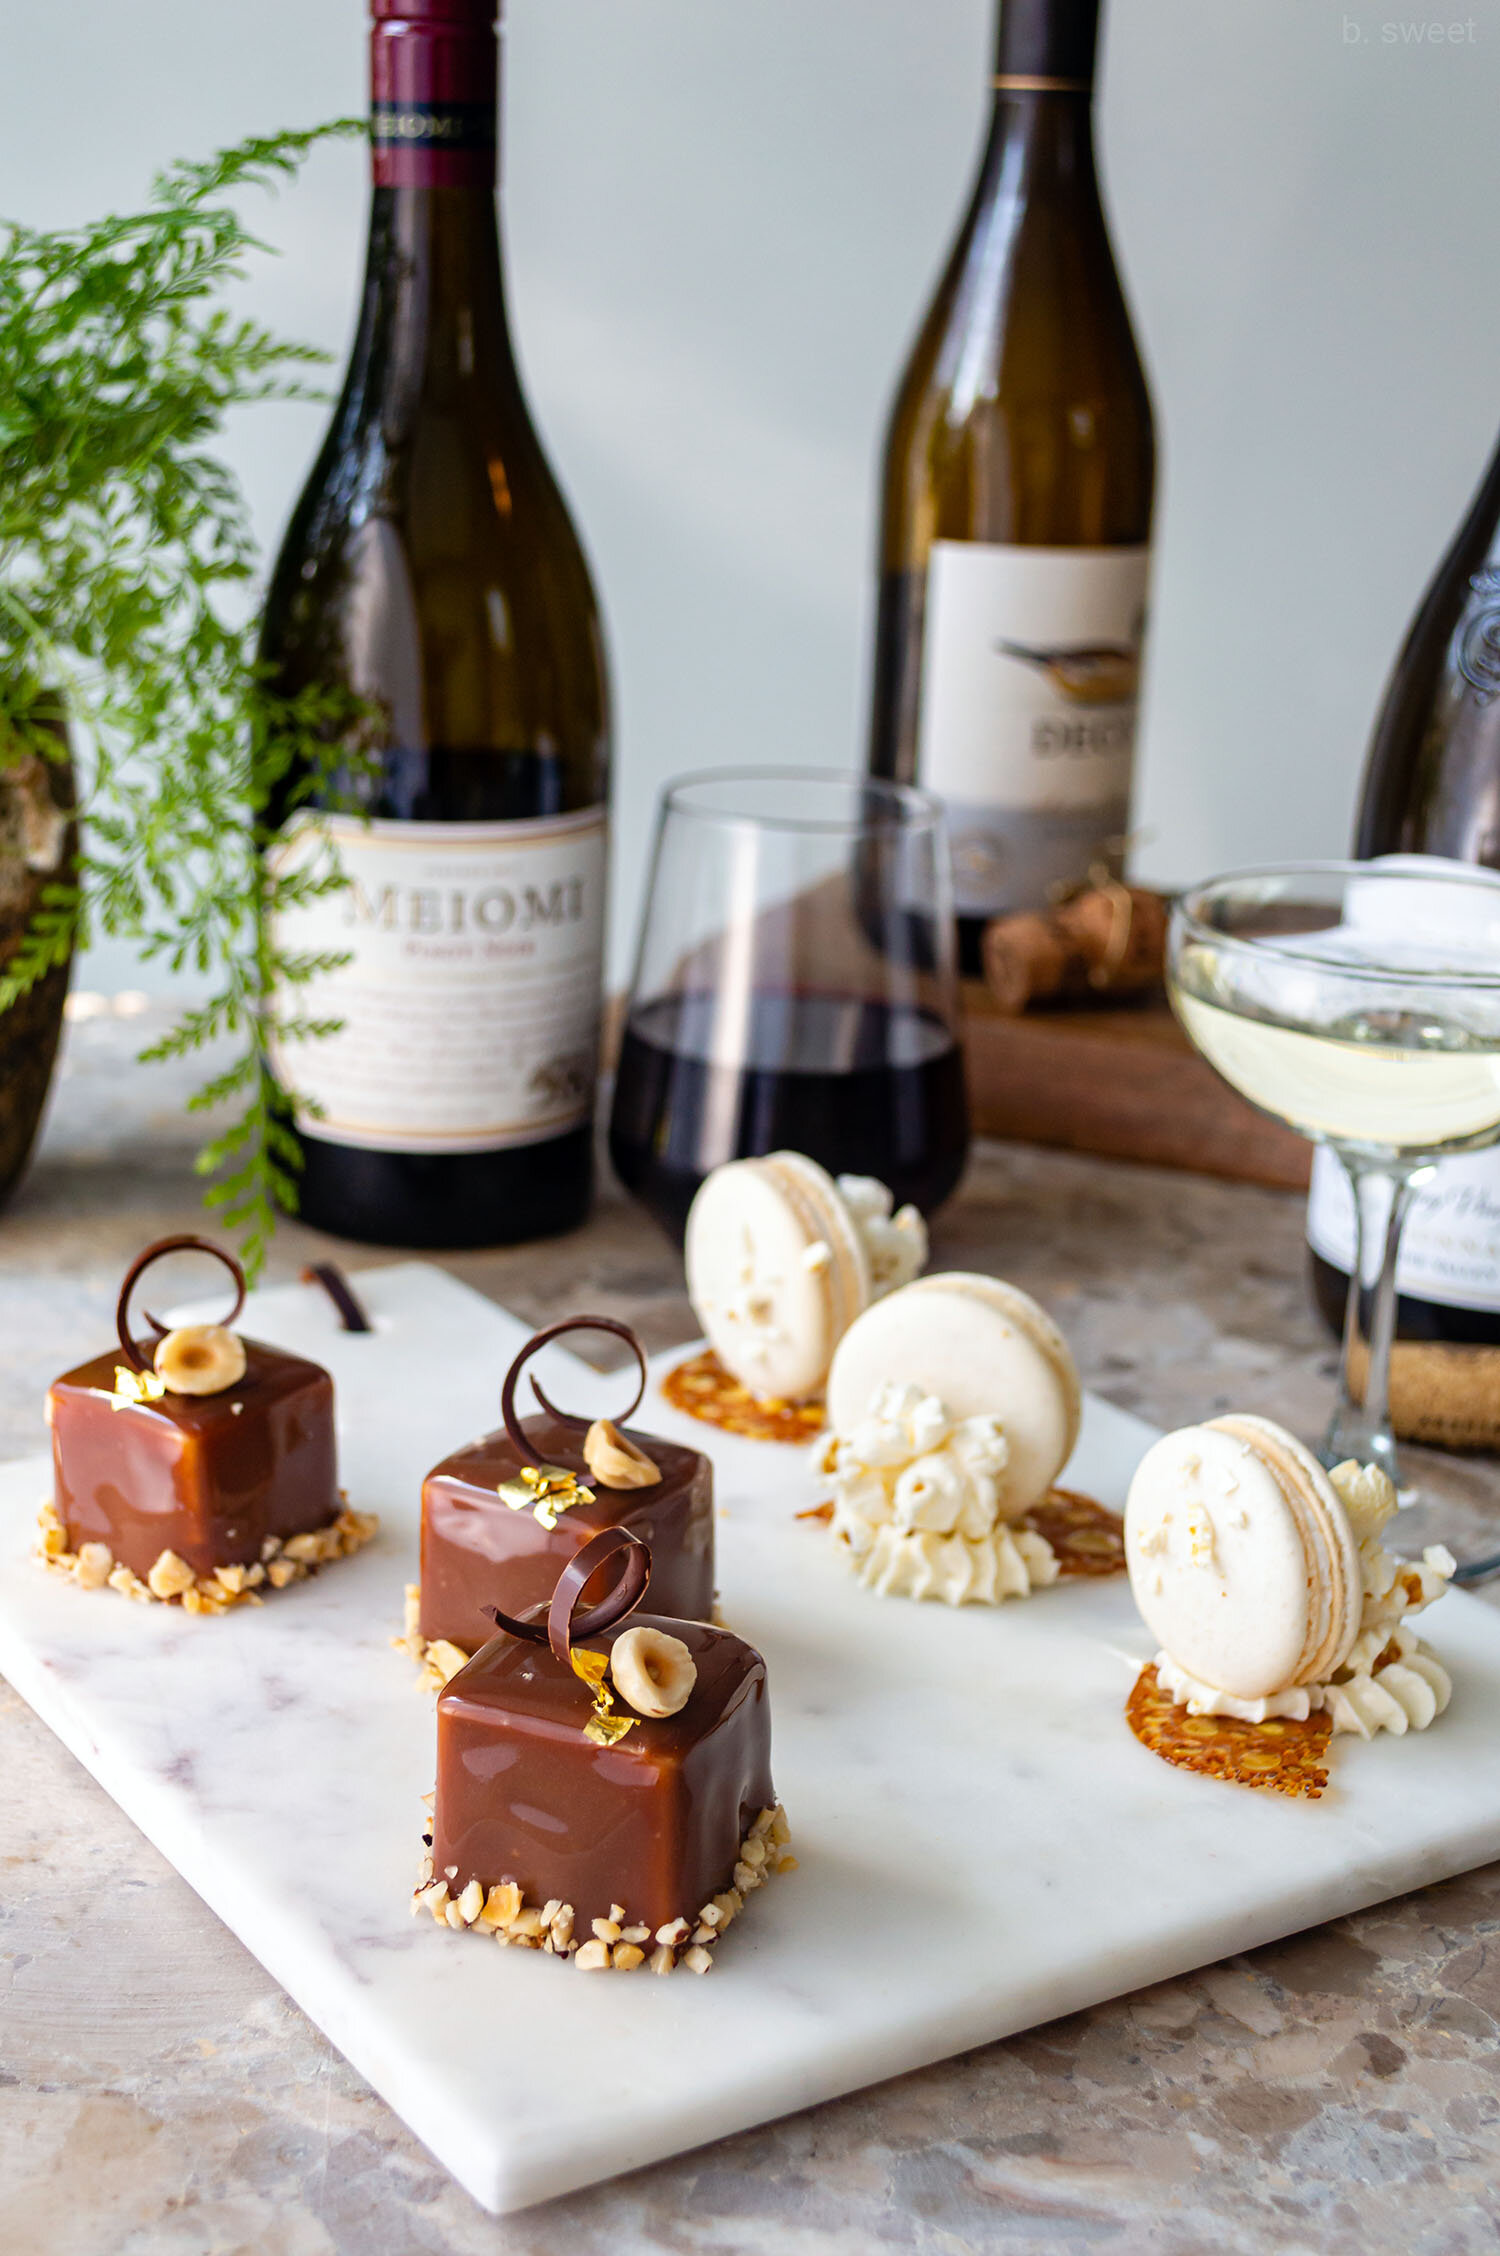 Fall Dessert and Wine Pairing Teaser for A Night to Remember - b. sweet